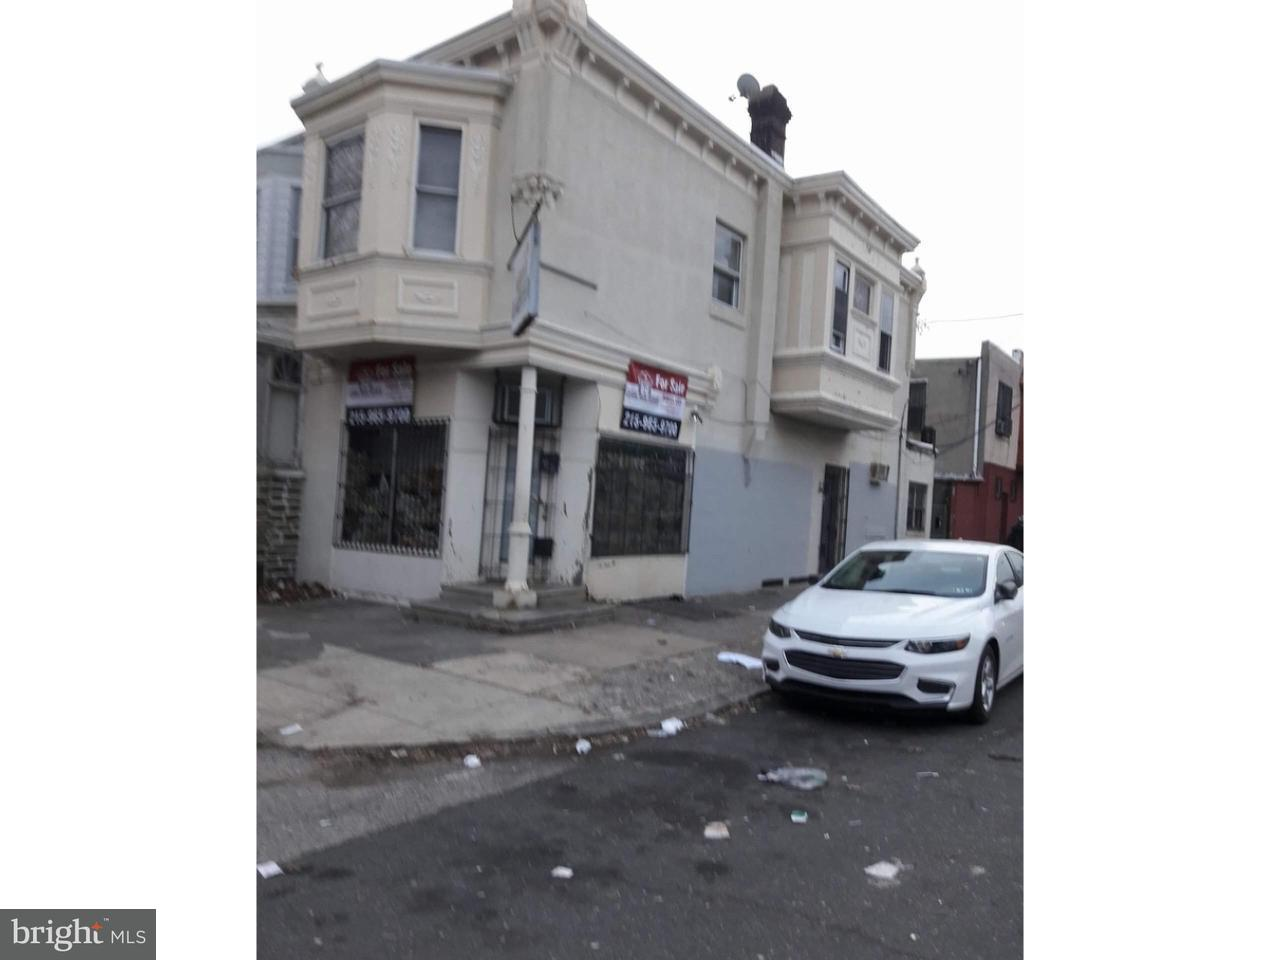 4362 N Franklin Philadelphia, PA 19140